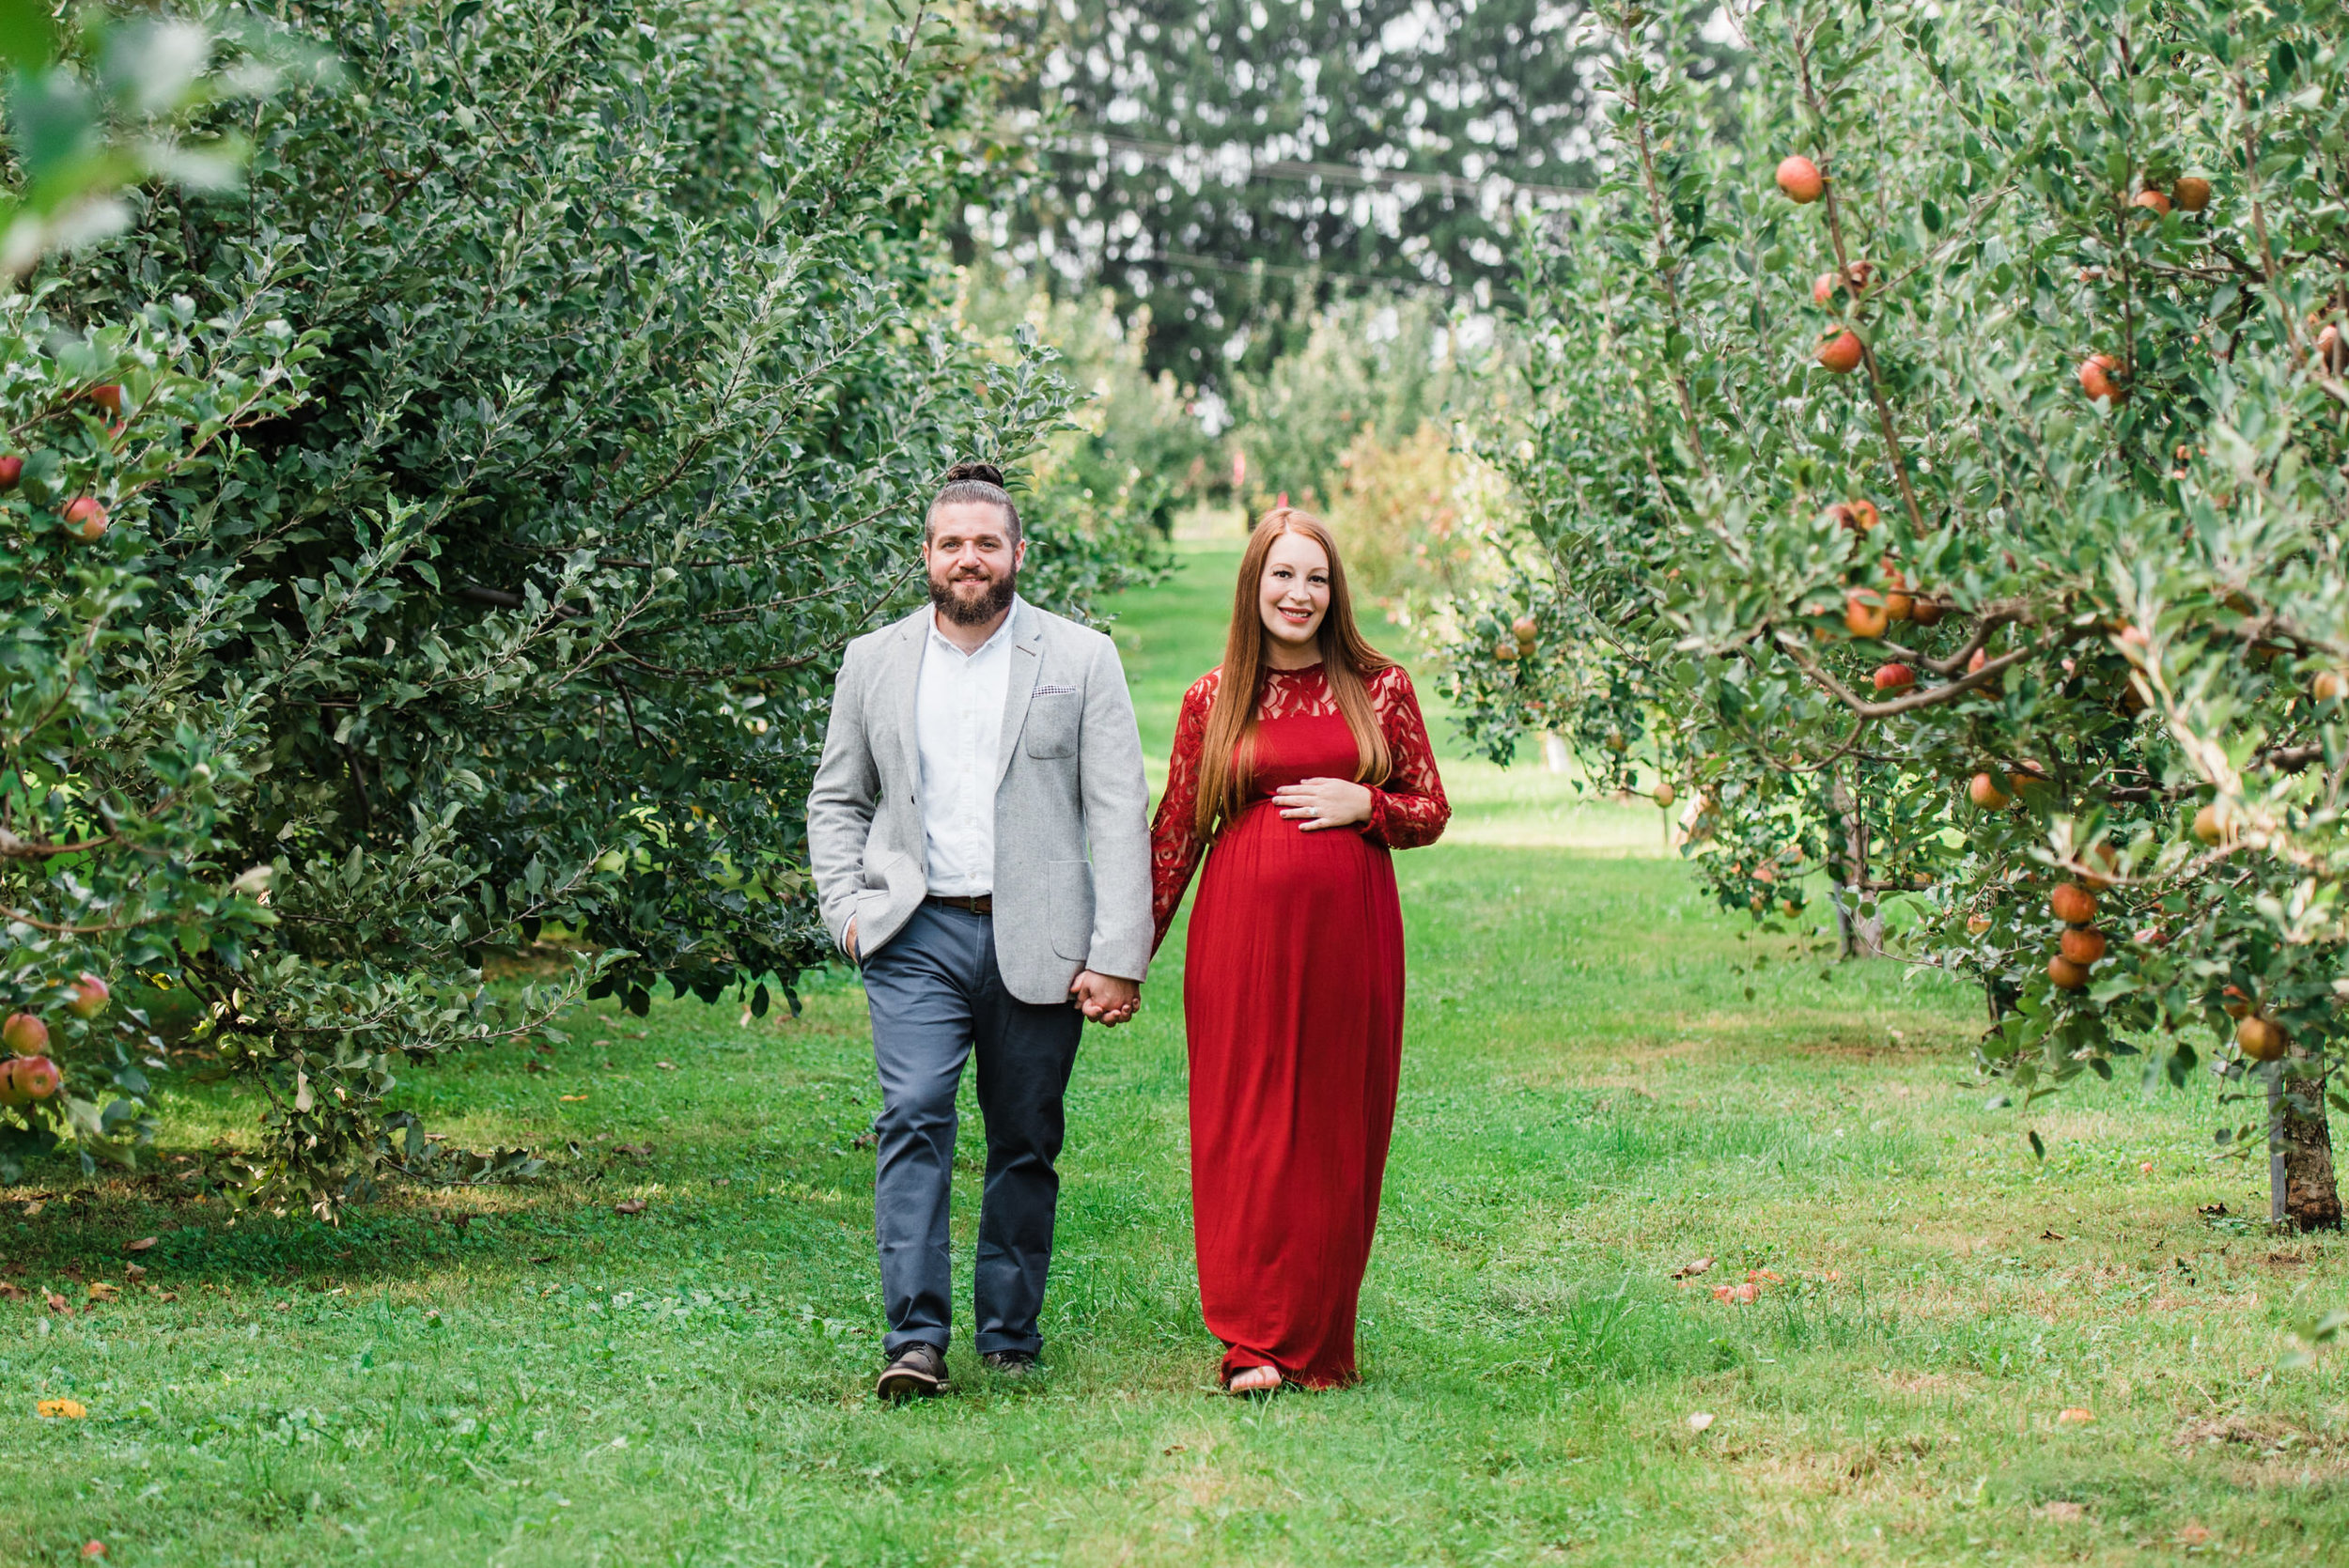 pittsburgh-maternity-photographers-winery-apple-orchard-session_21.jpg